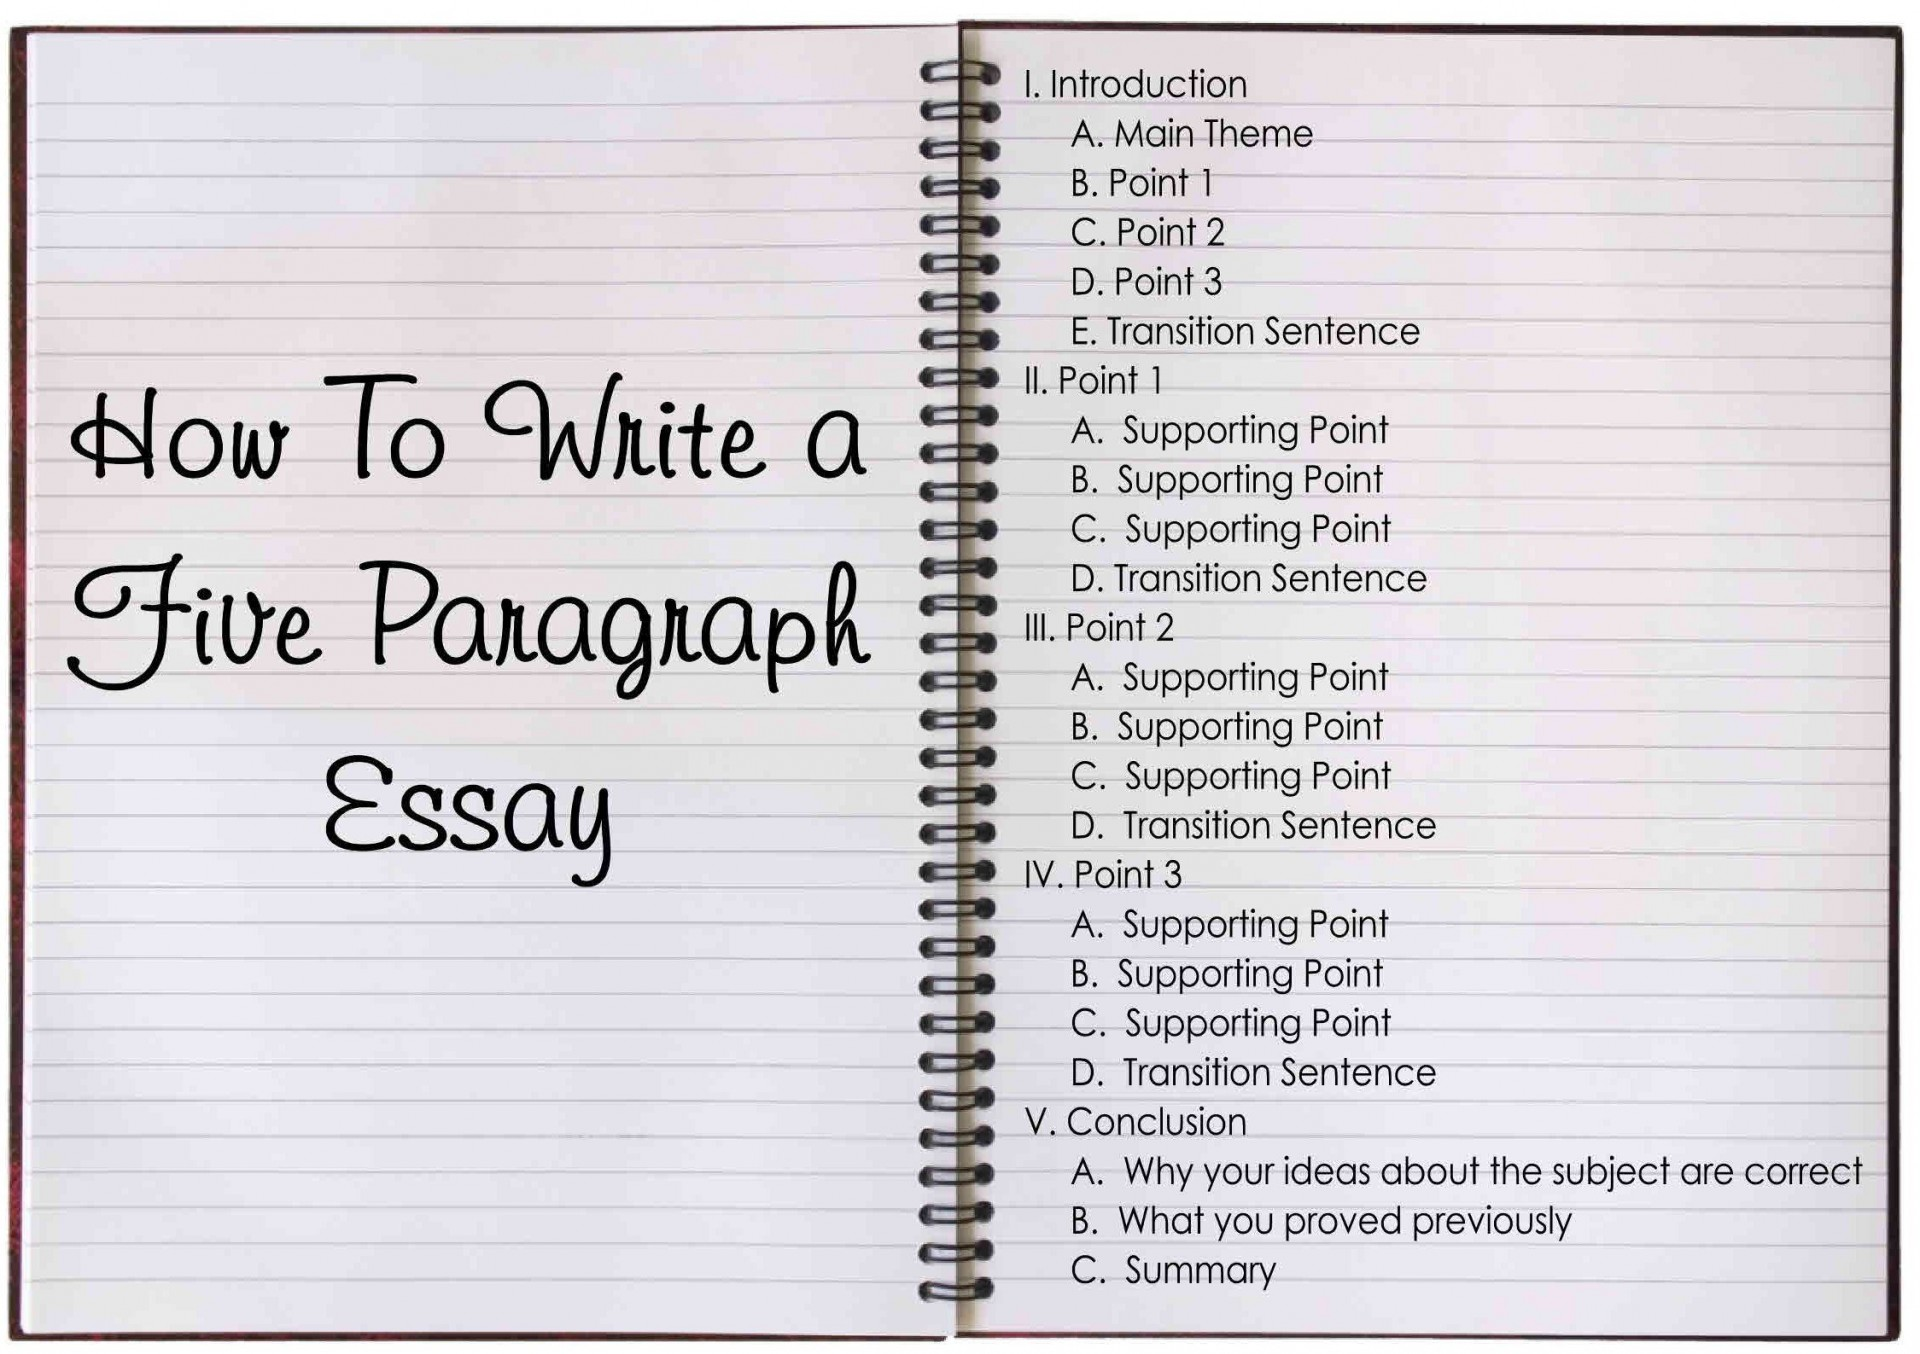 006 Paragraph Essay Example For Kids Sensational 3 1920